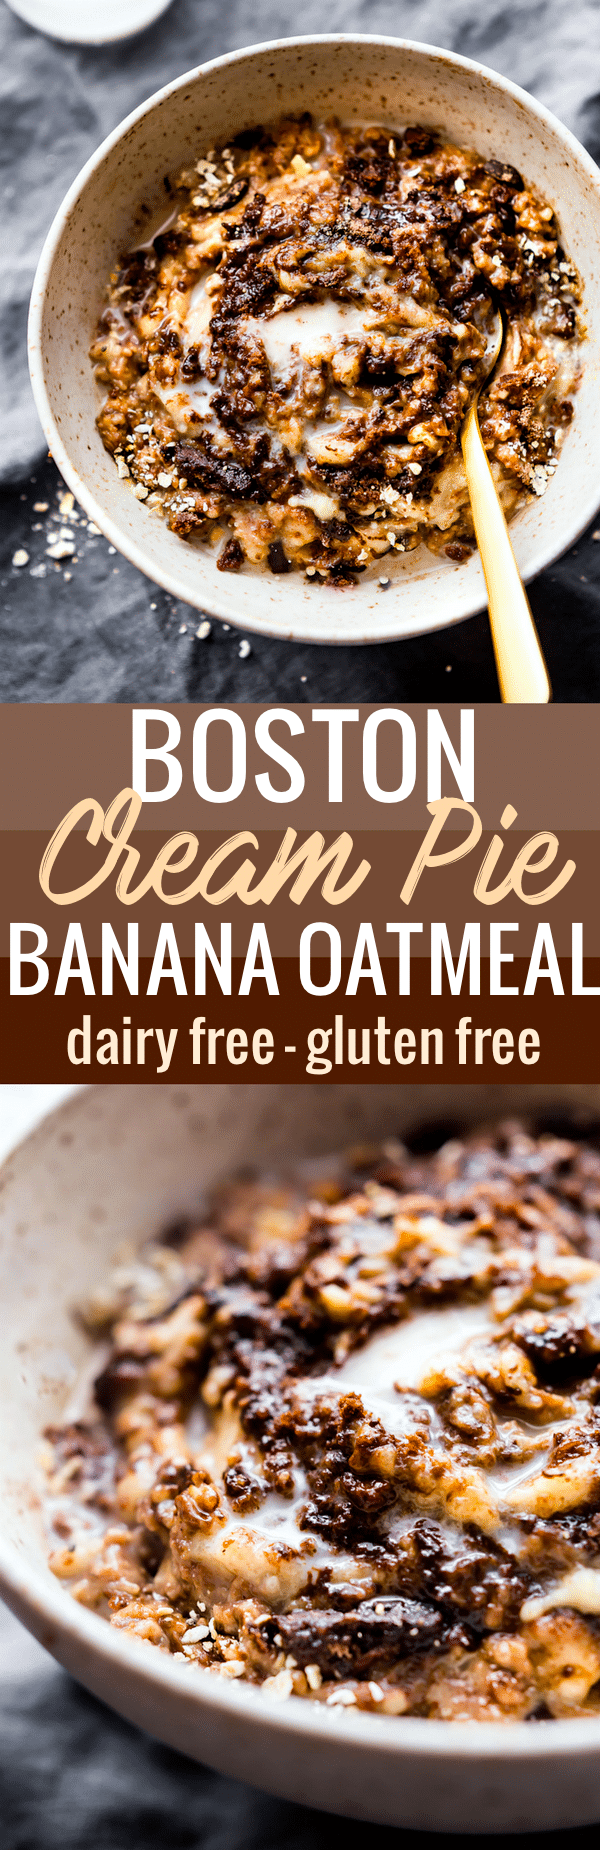 "This dairy free Boston Cream Pie Banana Oatmeal is a gluten free ""superfood"" breakfast treat! A banana oatmeal recipe that tastes like dessert, yet satisfying and nourishing! Made with natural ingredients and a boost of protein. Perfect for post workout recovery, a hearty breakfast, or just pure bliss taste! www.cottercrunch.com"